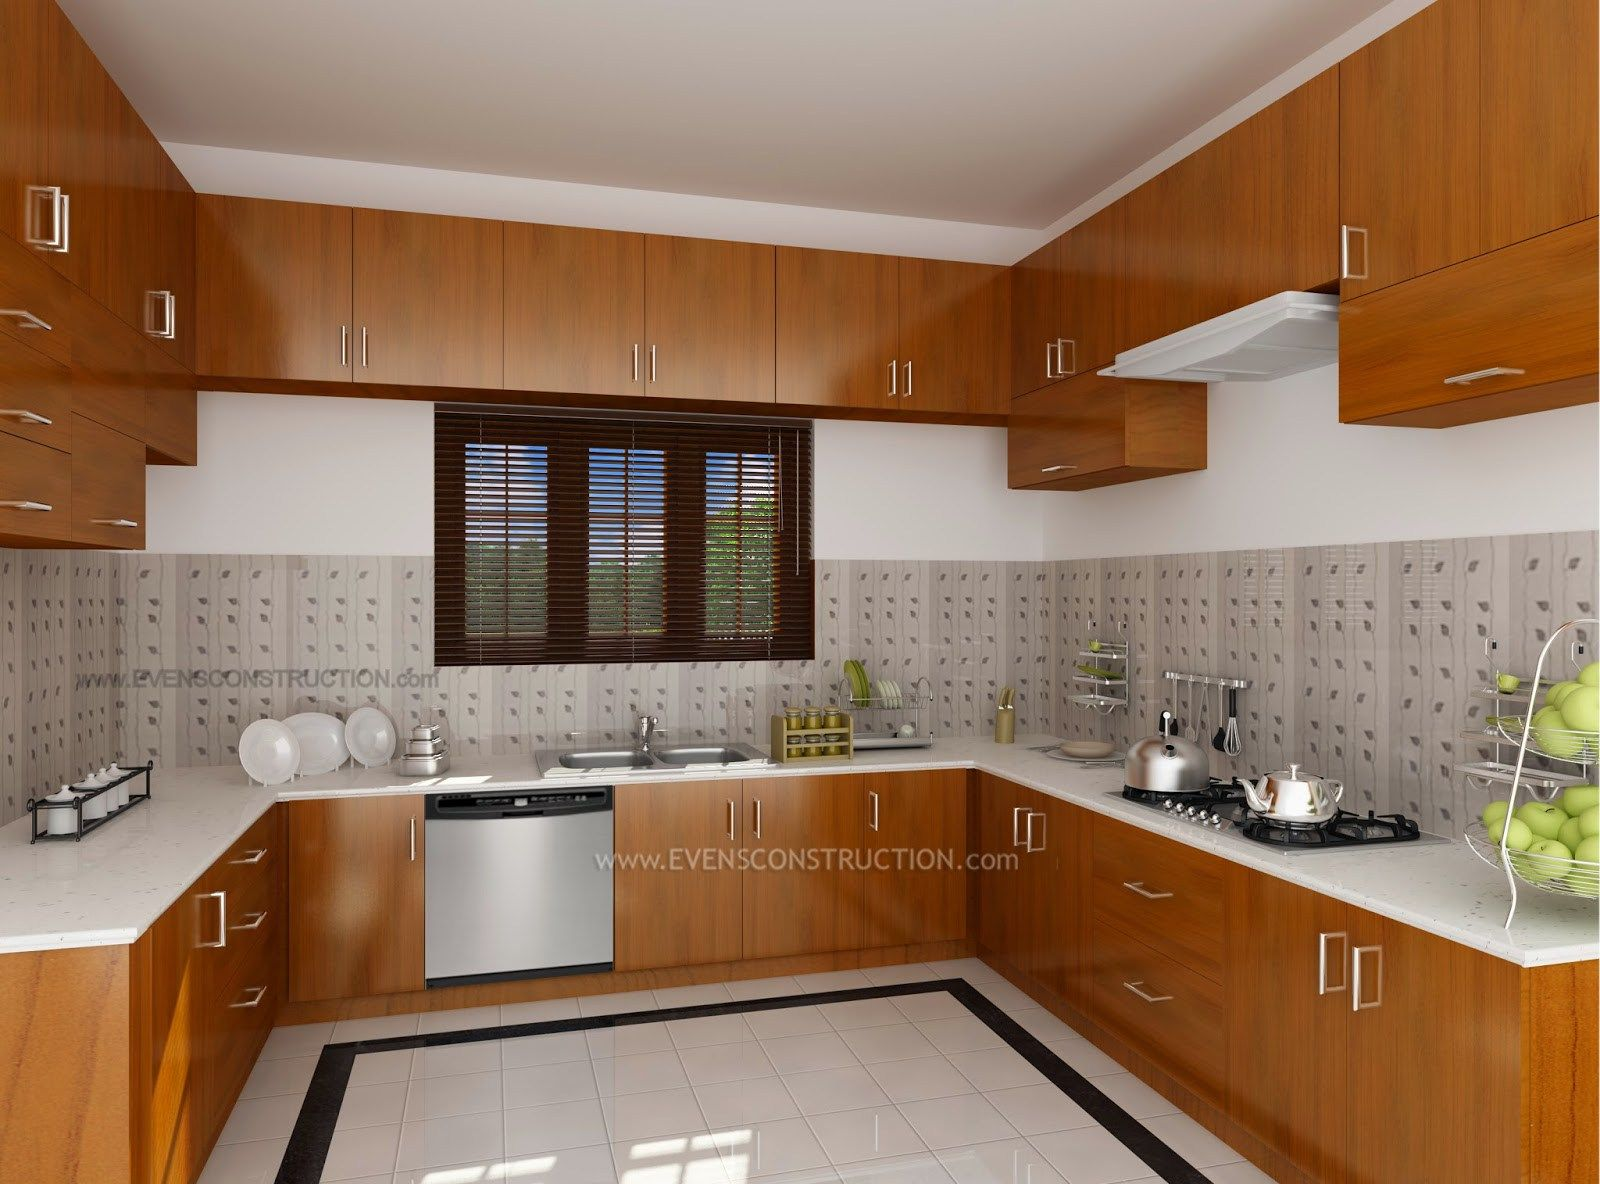 Design interior kitchen home kerala modern house kitchen for Indian house kitchen design